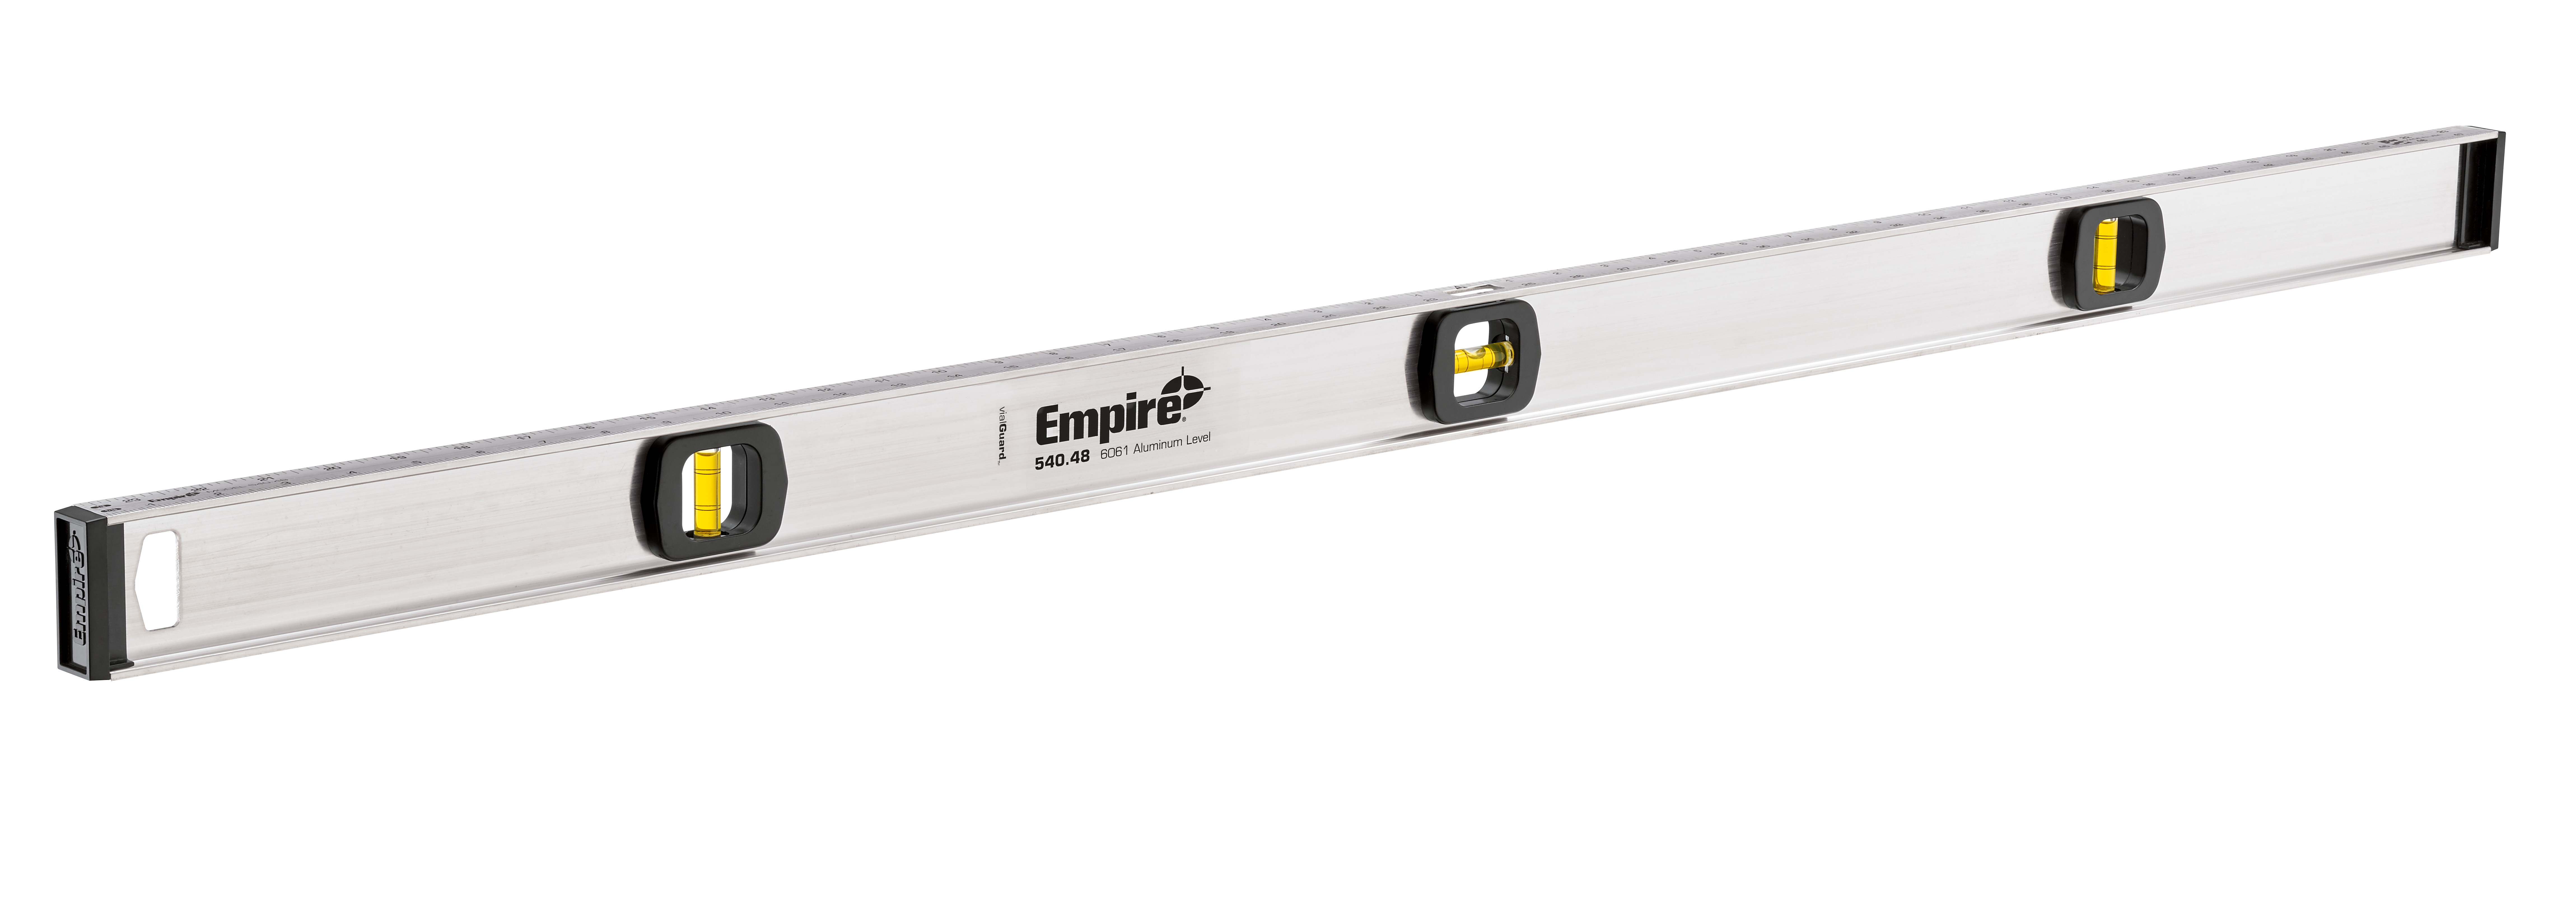 Milwaukee® Empire® 540-48 Tradesman's I-Beam Level, 48 in L, 3 Vials, Aluminum, (1) Level, (2) Plumb Vial Position, 0.001 in Accuracy